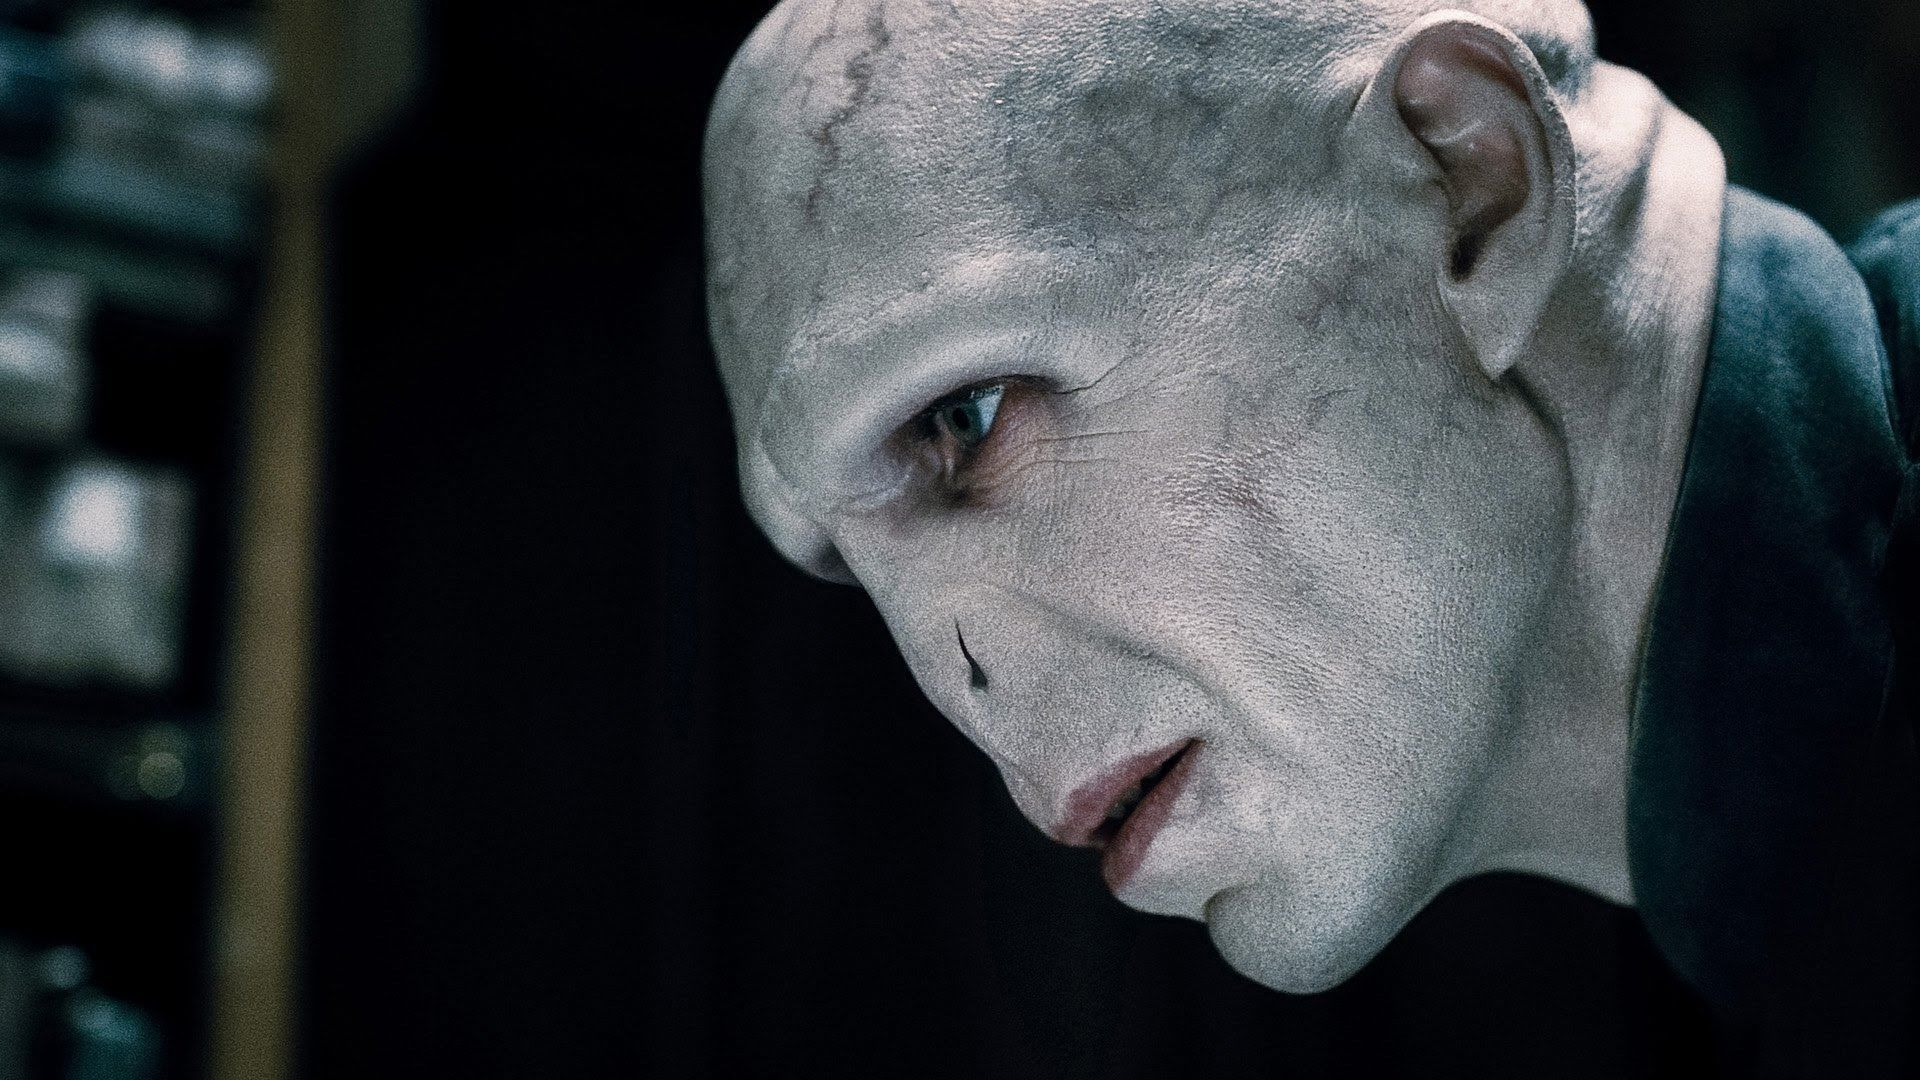 How To Do A Voldemort Makeup Look Harry Potter Voldemort Harry Potter Bosewichte Lord Voldemort